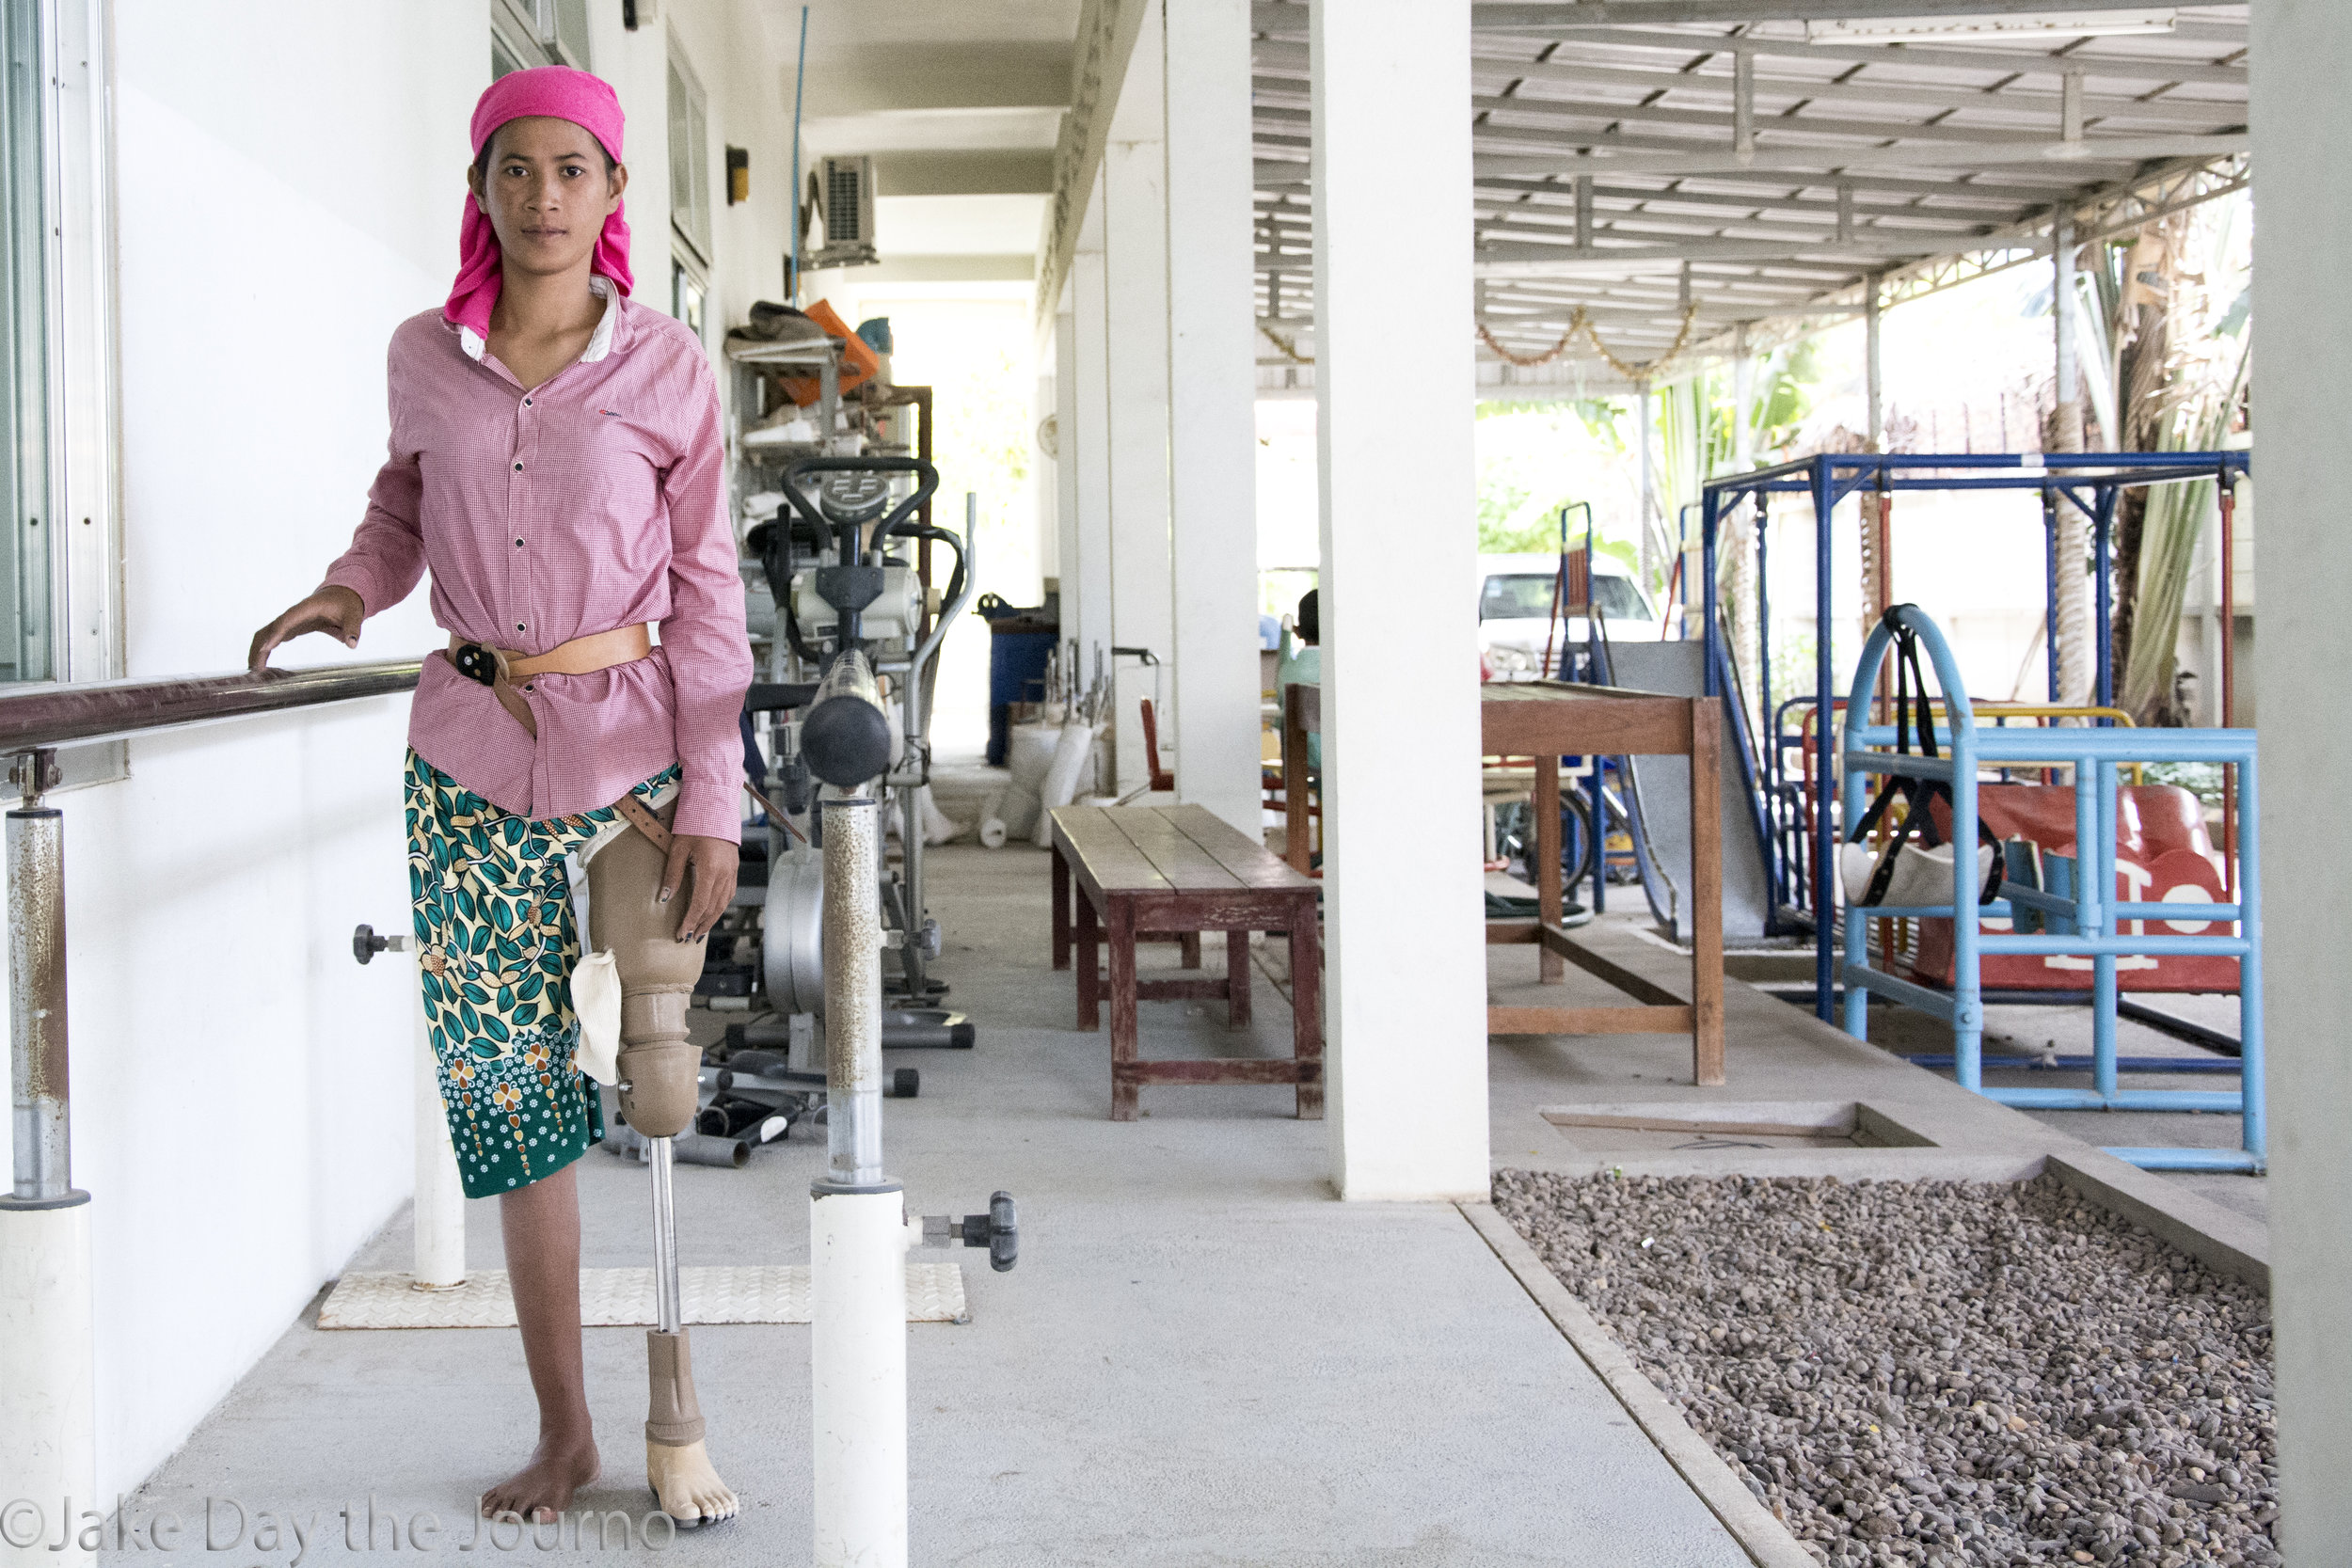 Choun Srey lost her leg after a car accident. She pauses while practicing her gait at the Exceed Cambodian School of Prosthetics and Orthotics on 15/01/18 by Jake Day.